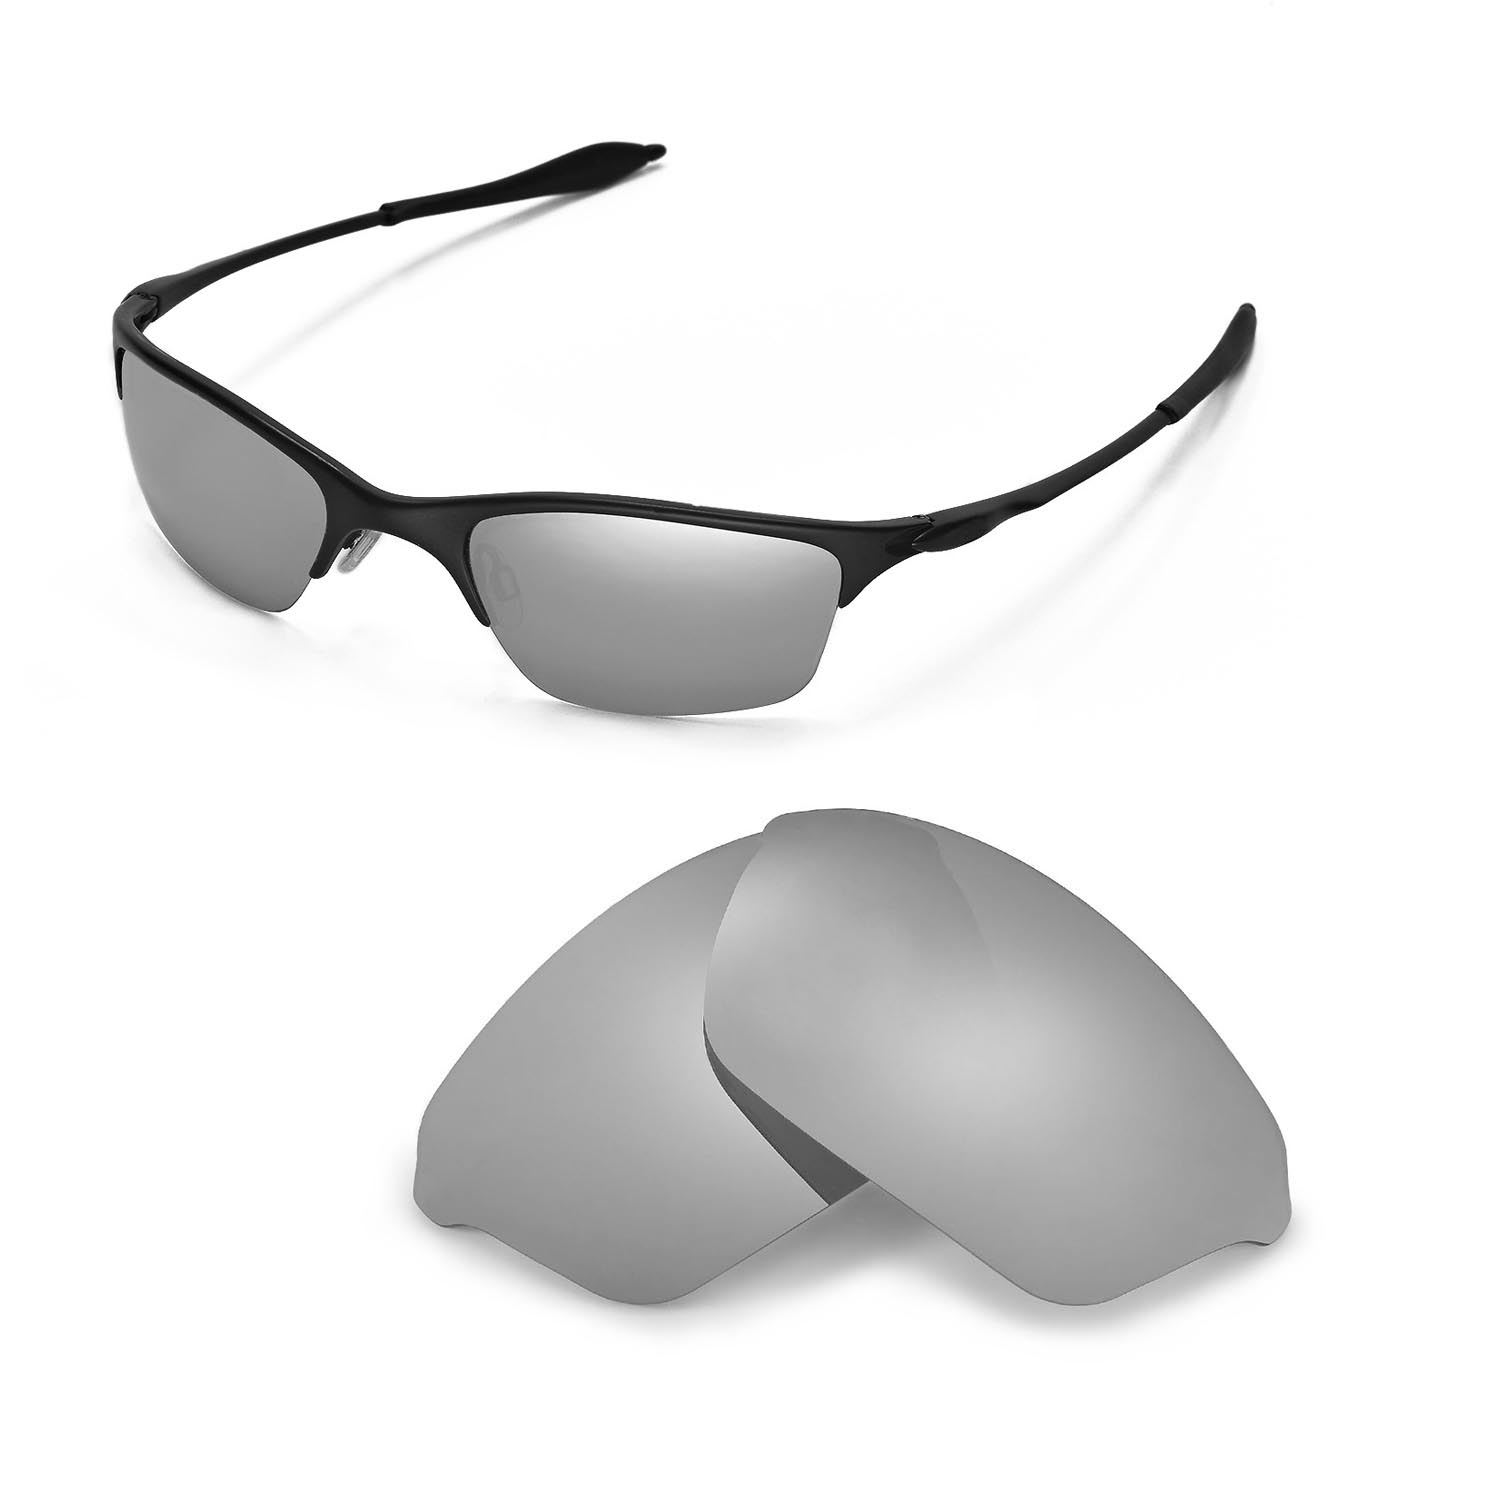 Replacement Lenses For Oakley Sunglasses  new wl polarized anium replacement lenses for oakley half wire